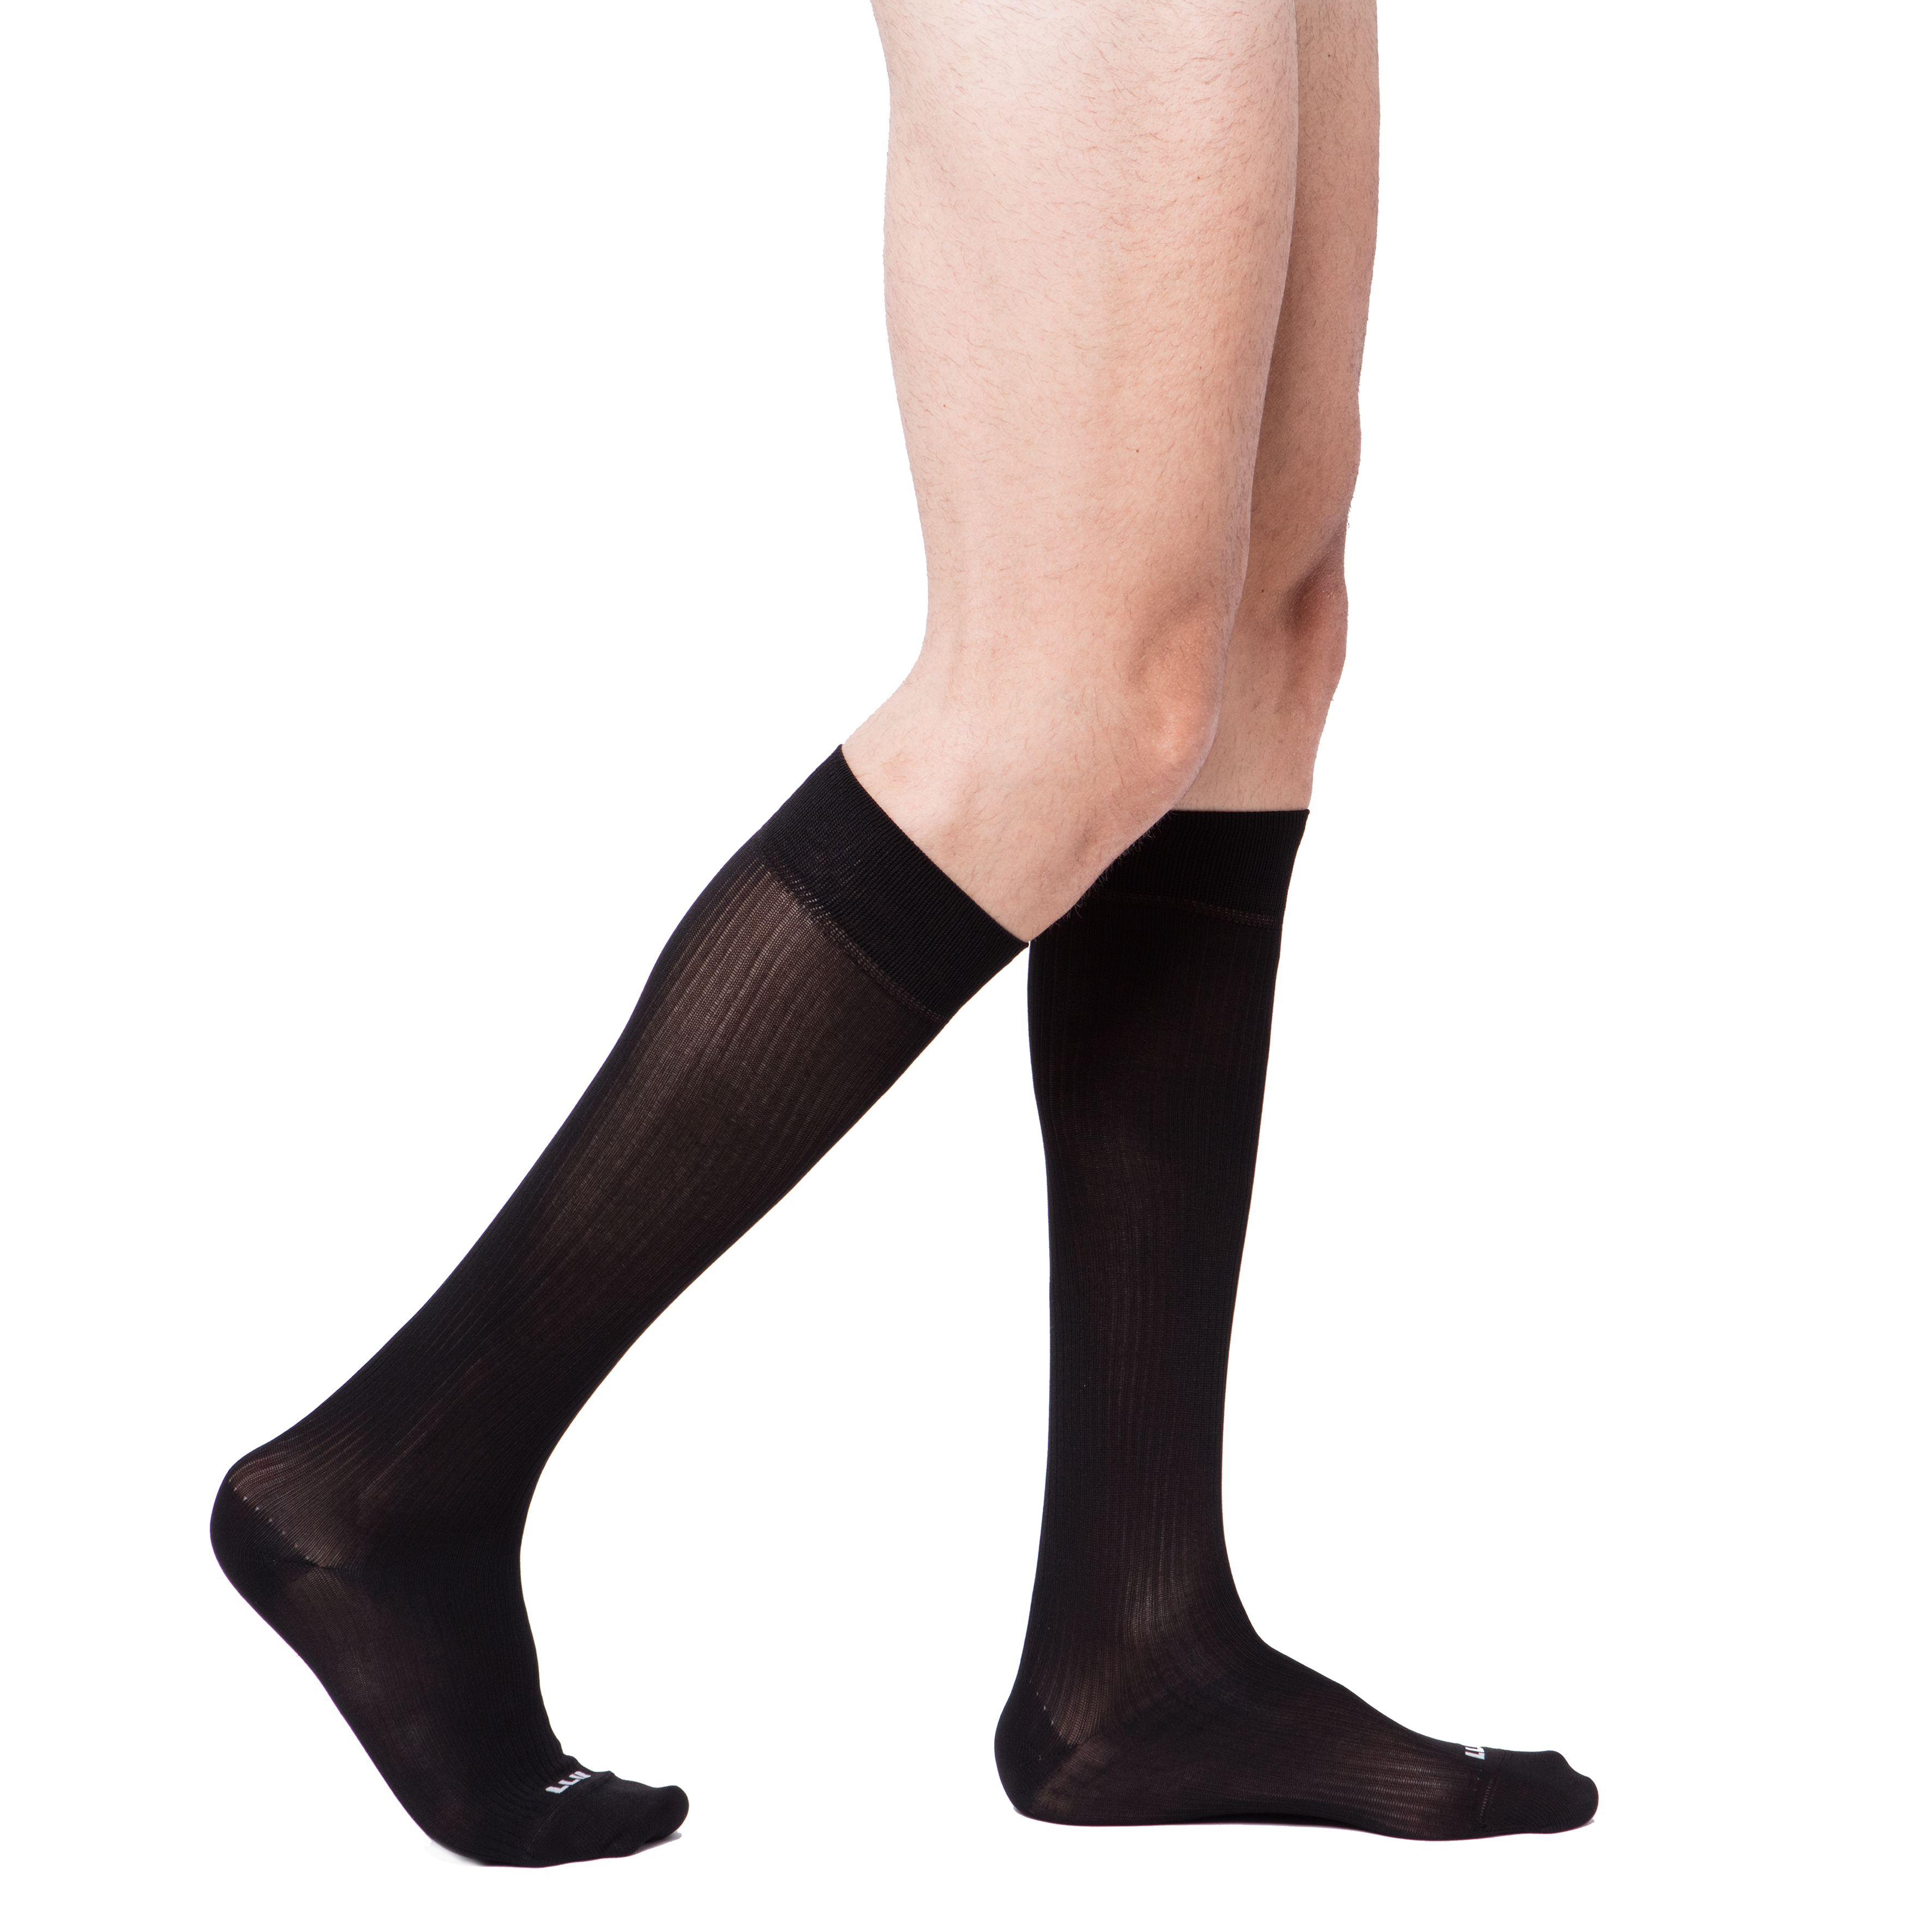 The Rib Collection Knee High